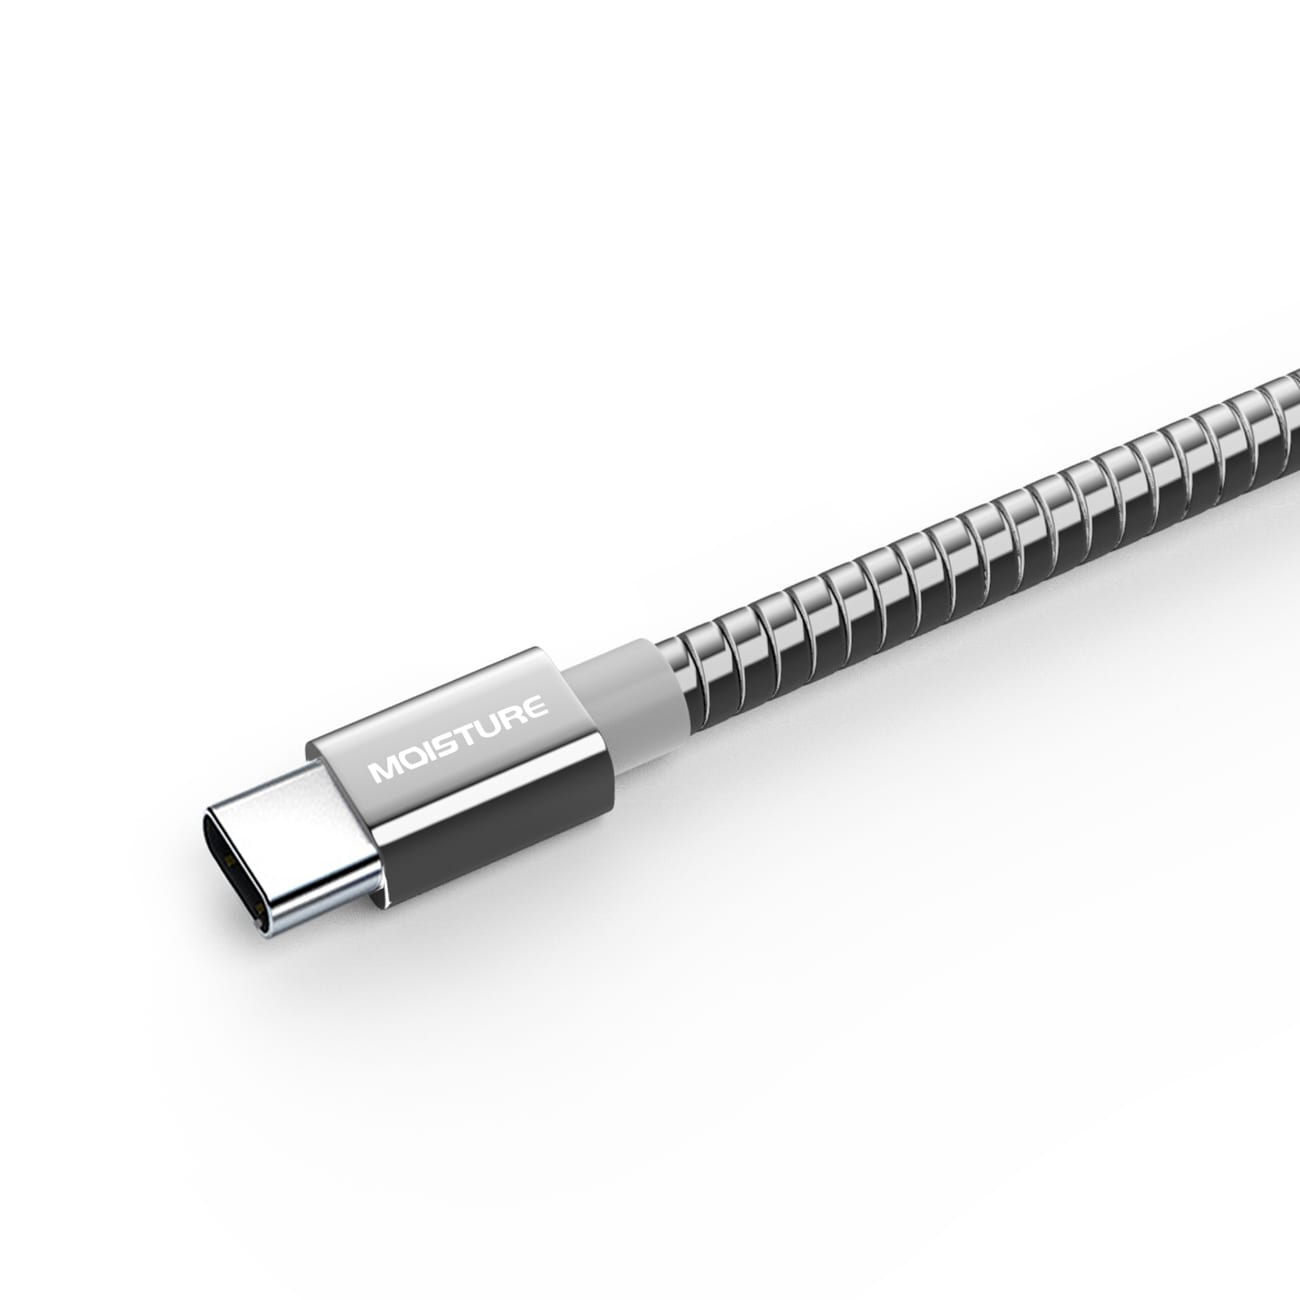 High Speed Type-C Data Cable in Gray